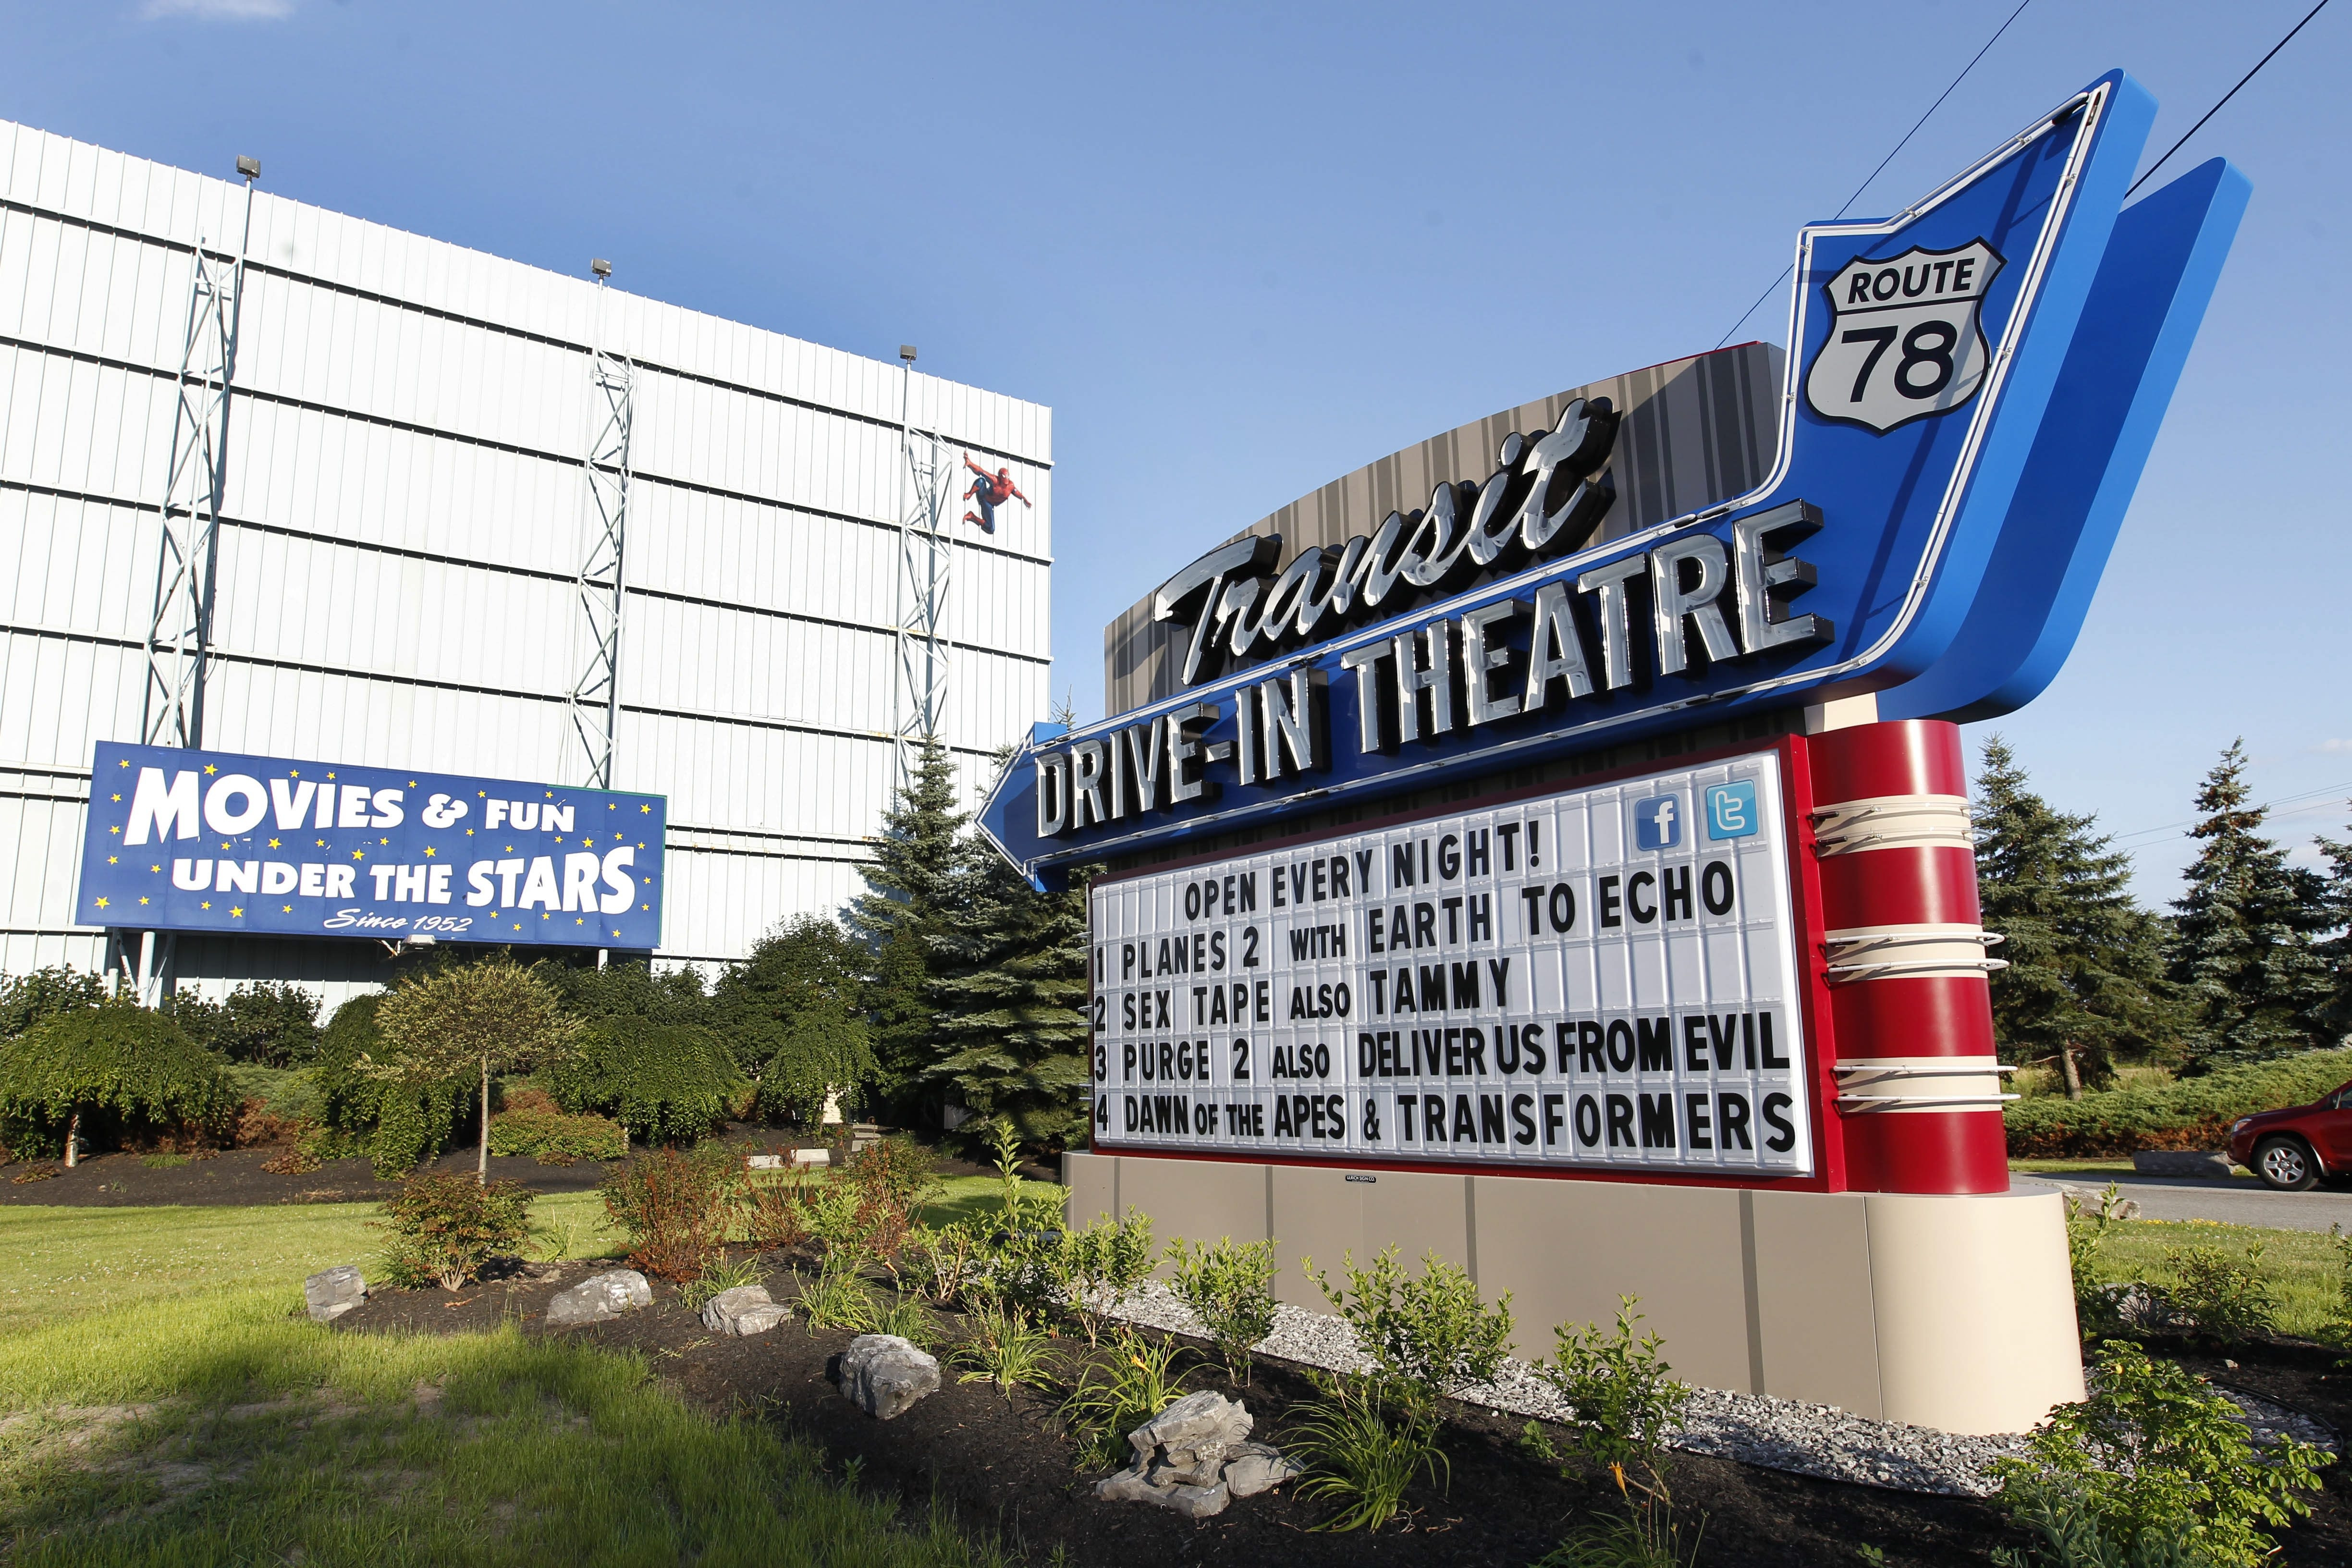 The Transit Drive-In Theatre, Thursday, July 17, 2014.   (Sharon Cantillon/Buffalo News)